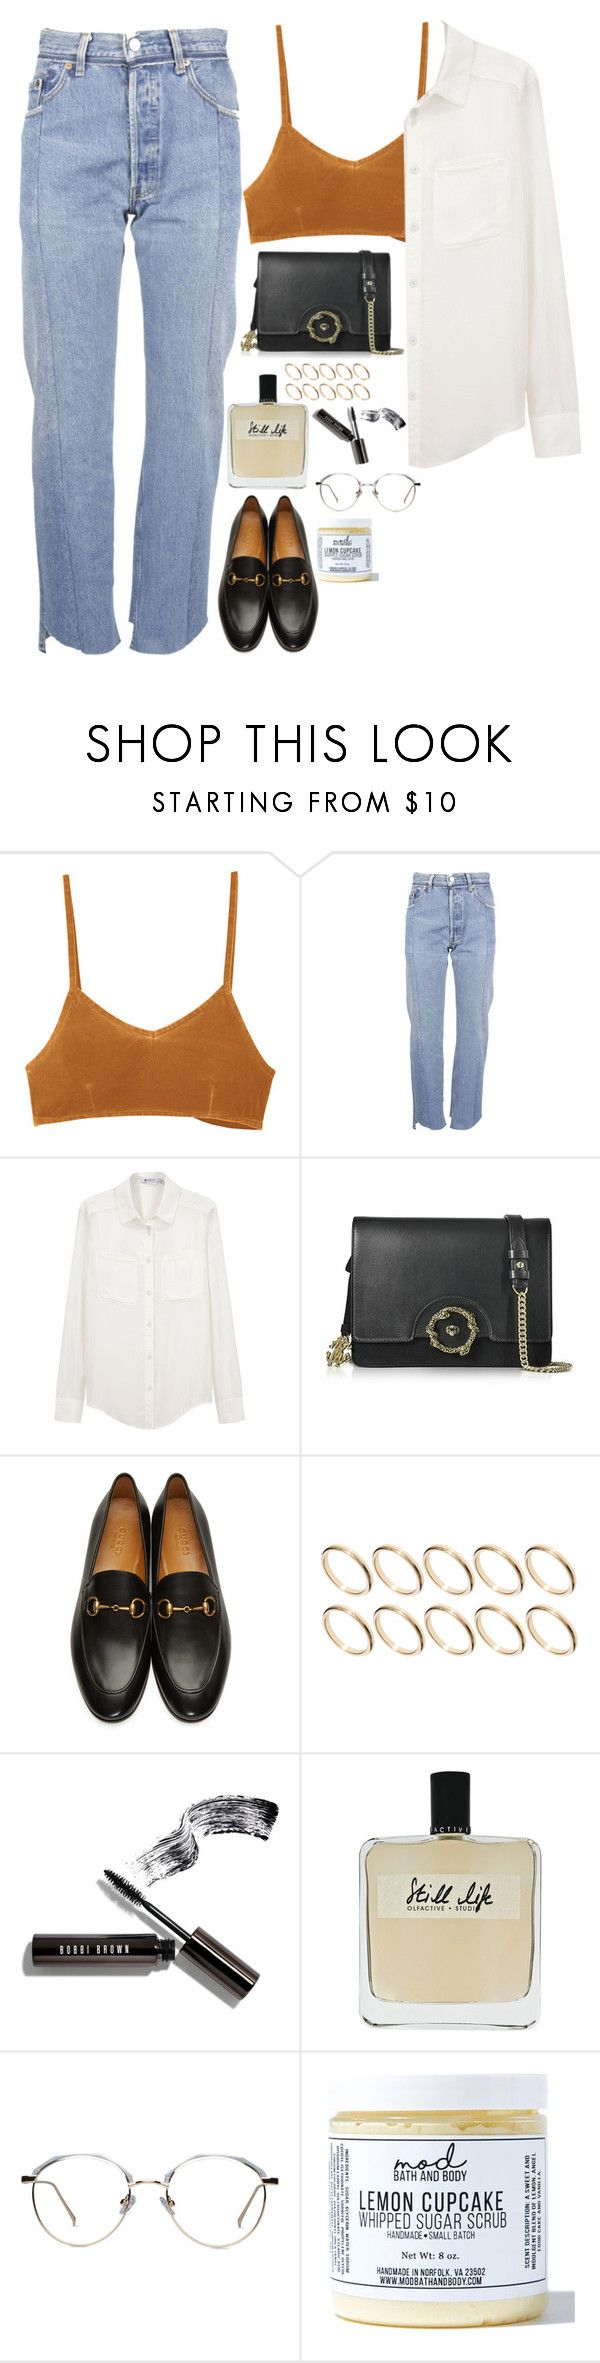 """""""Untitled #1945"""" by samikayy76 ❤ liked on Polyvore featuring RVCA, Vetements, T By Alexander Wang, Roberto Cavalli, Gucci, ASOS, Bobbi Brown Cosmetics, Olfactive Studio and Mod Bath and Body"""